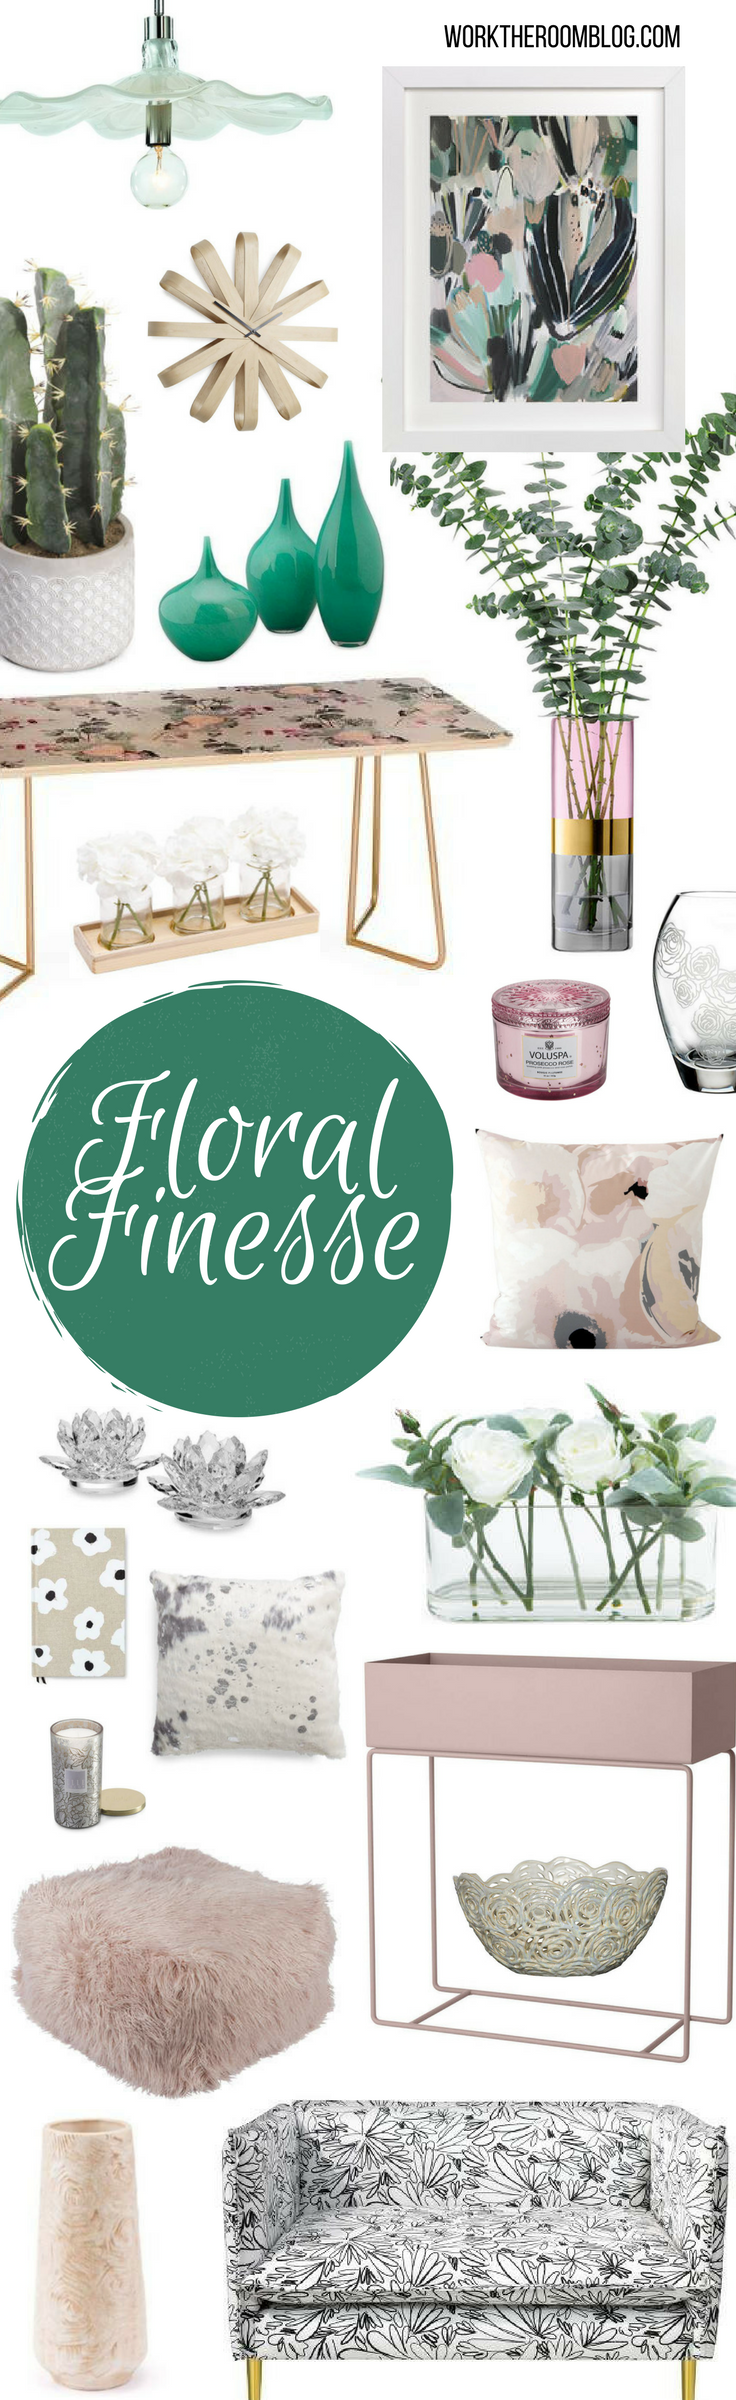 floralfinesse.png